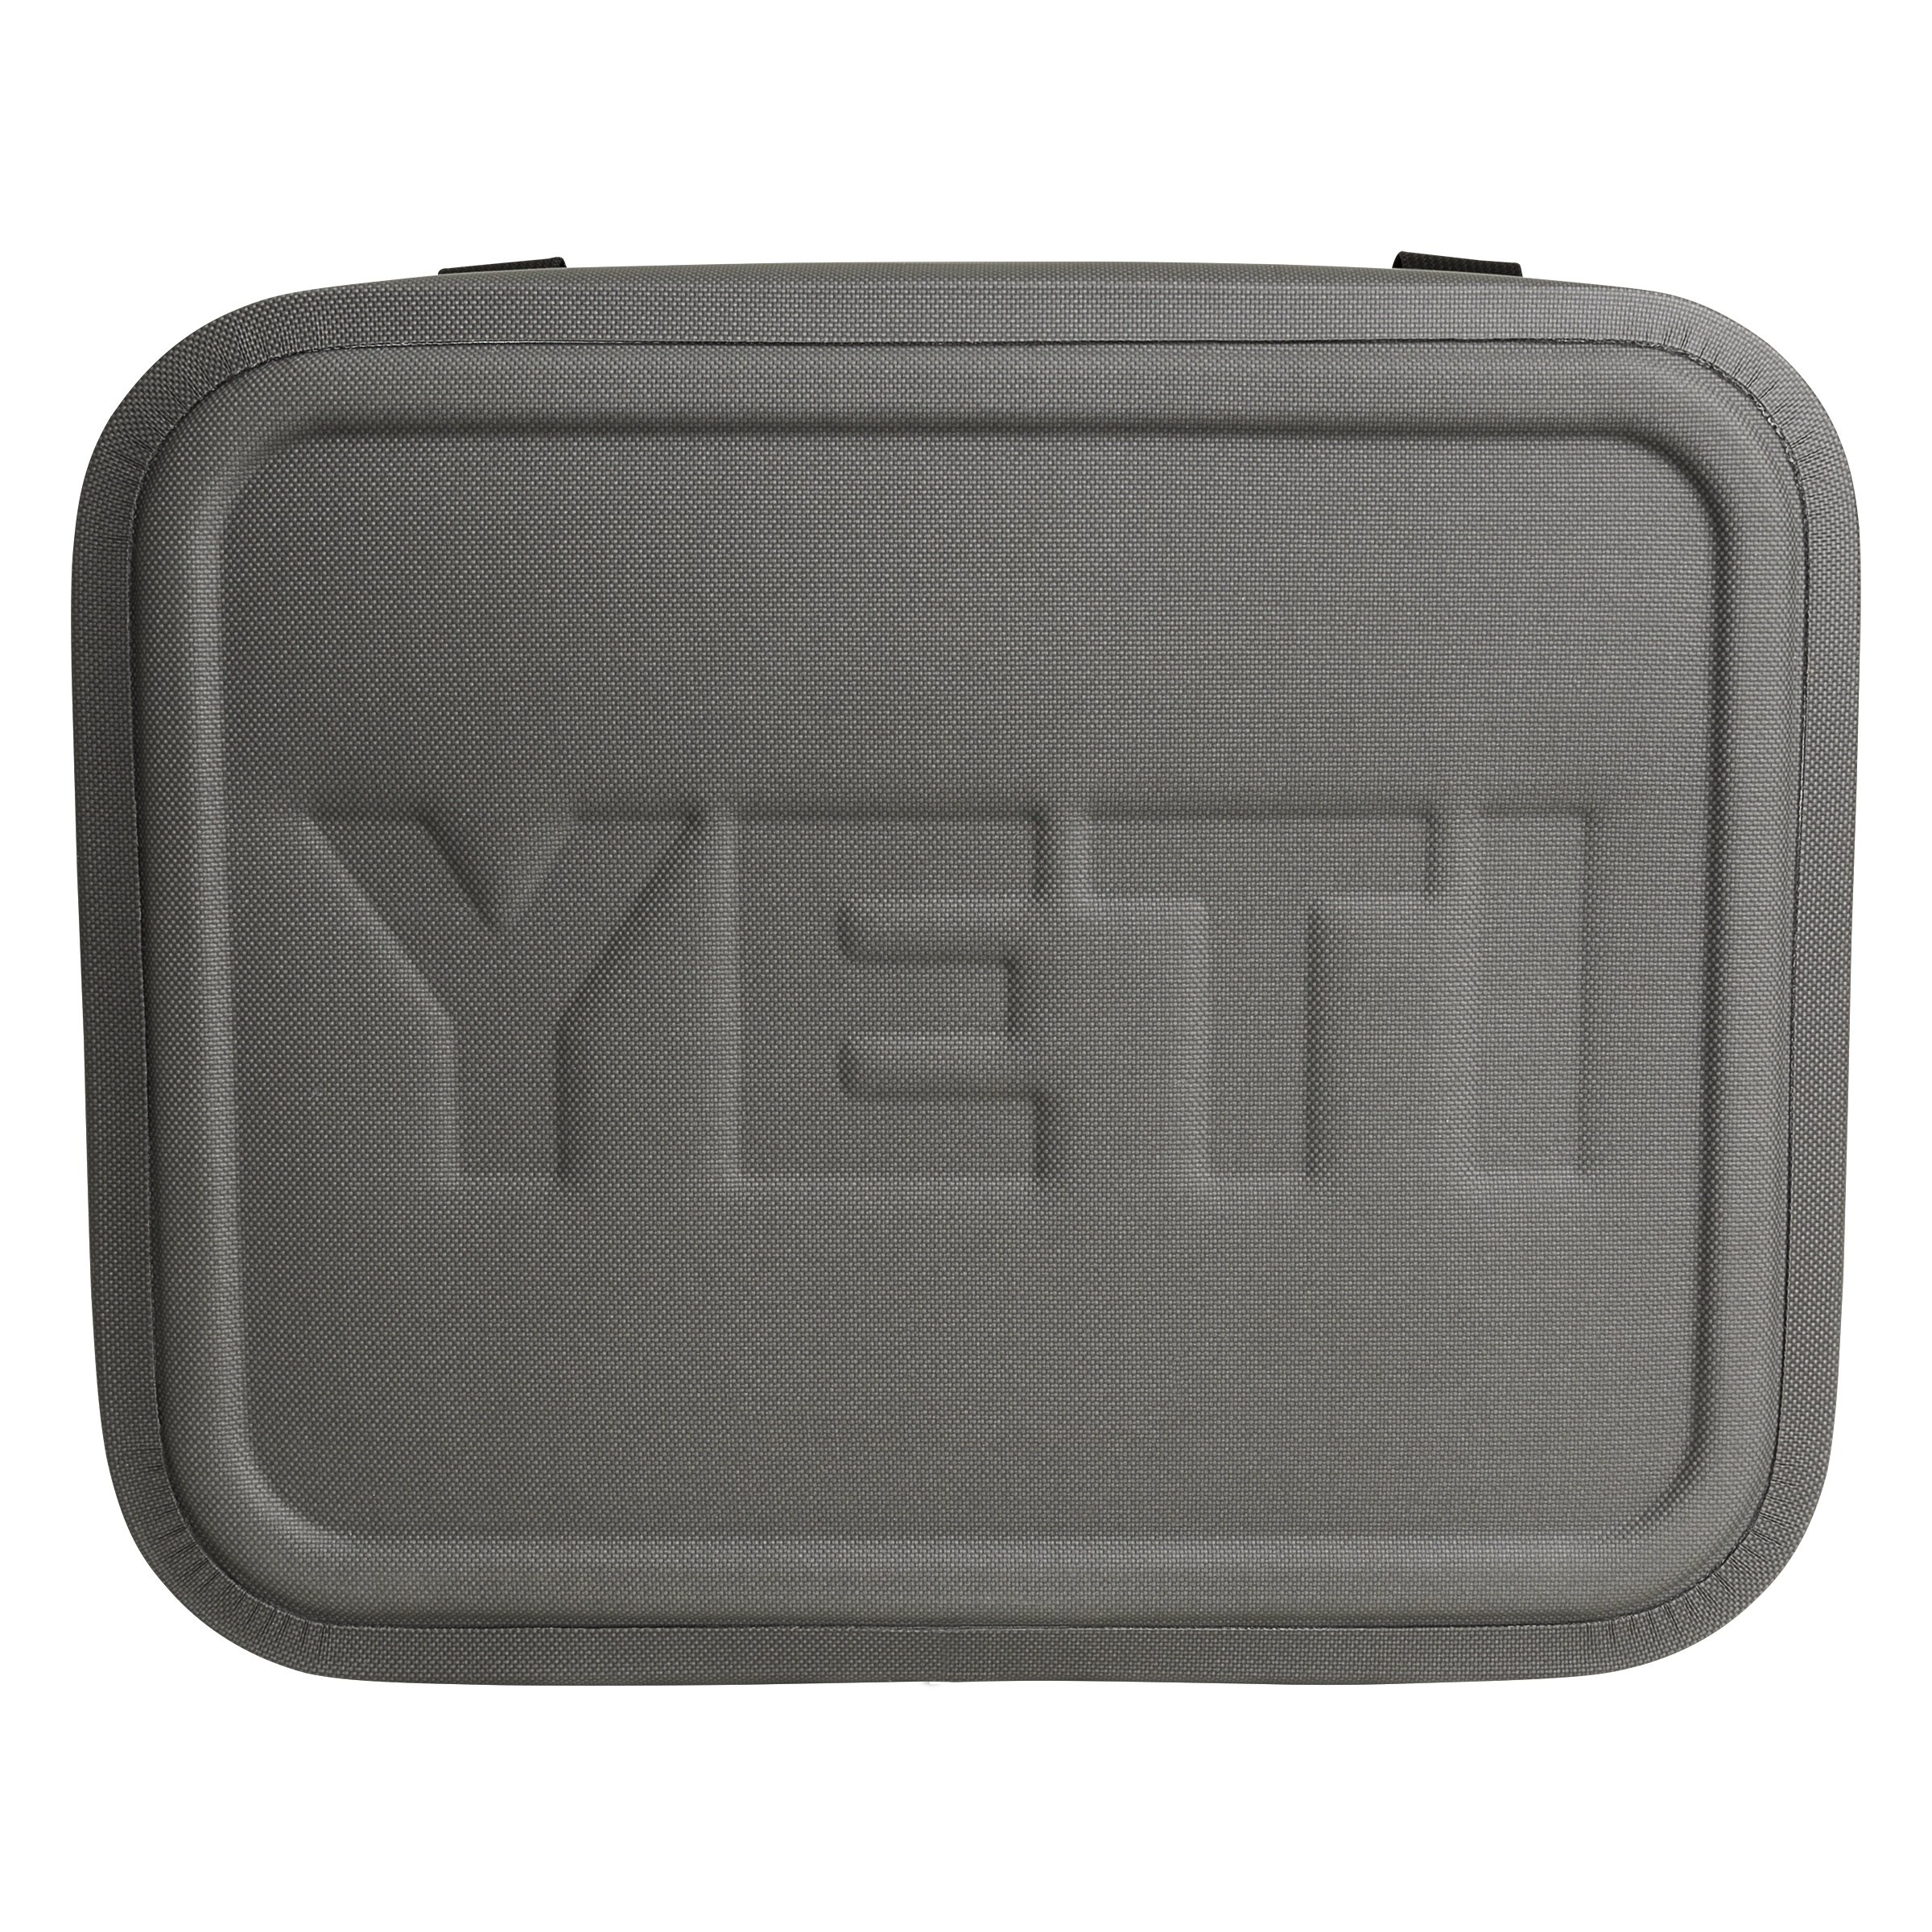 YETI Hopper Flip 12 Portable Cooler with Top Handle, Fog Gray by YETI (Image #6)